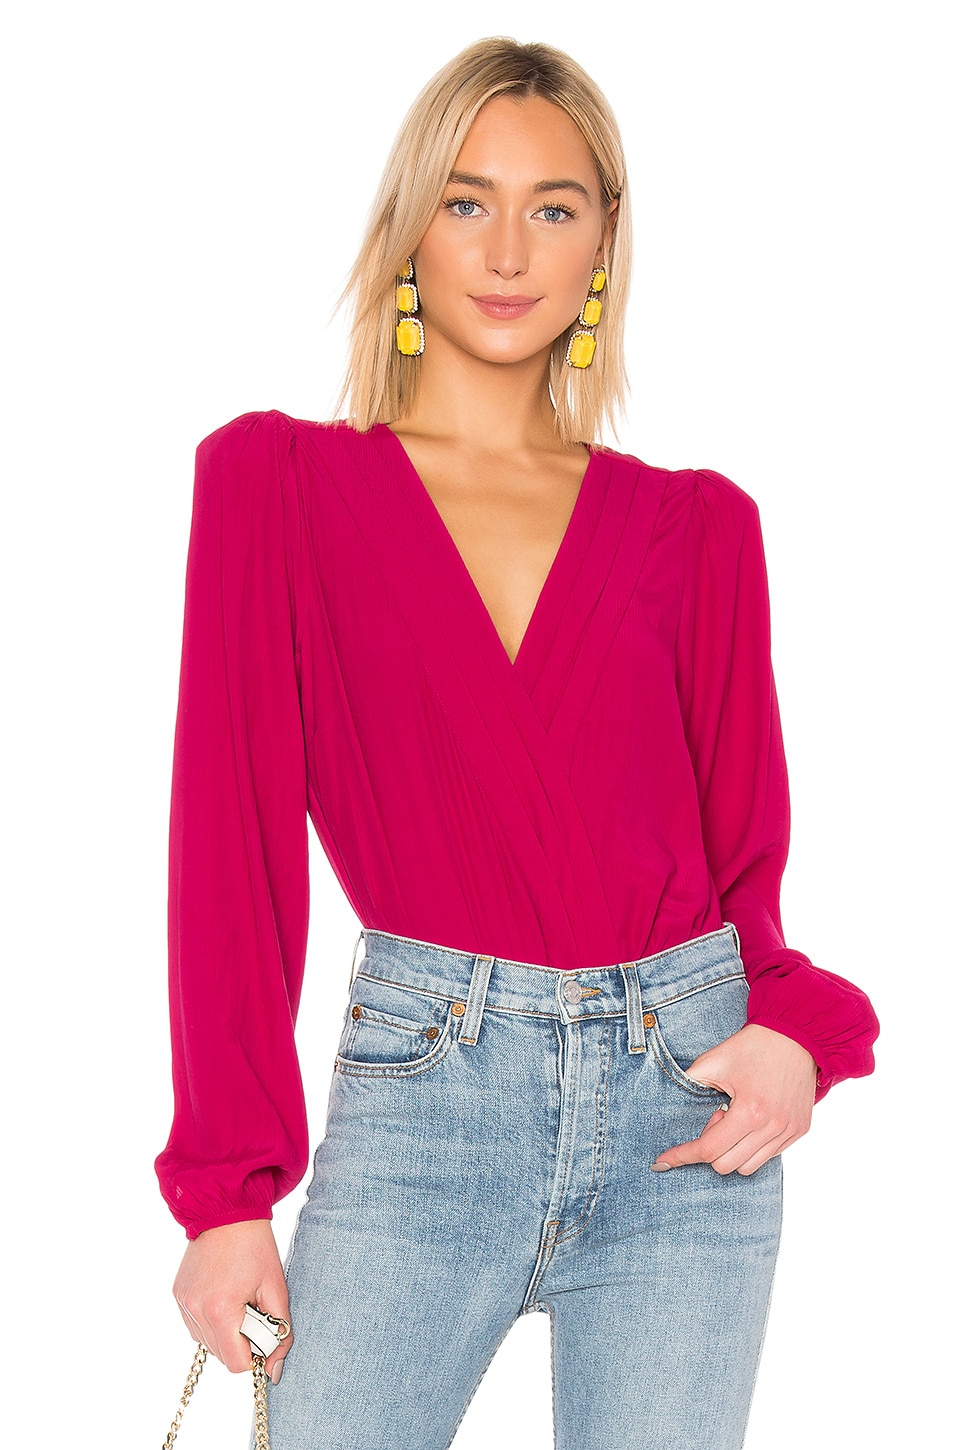 House of Harlow 1960 X REVOLVE Ivania Blouse in Fuchsia